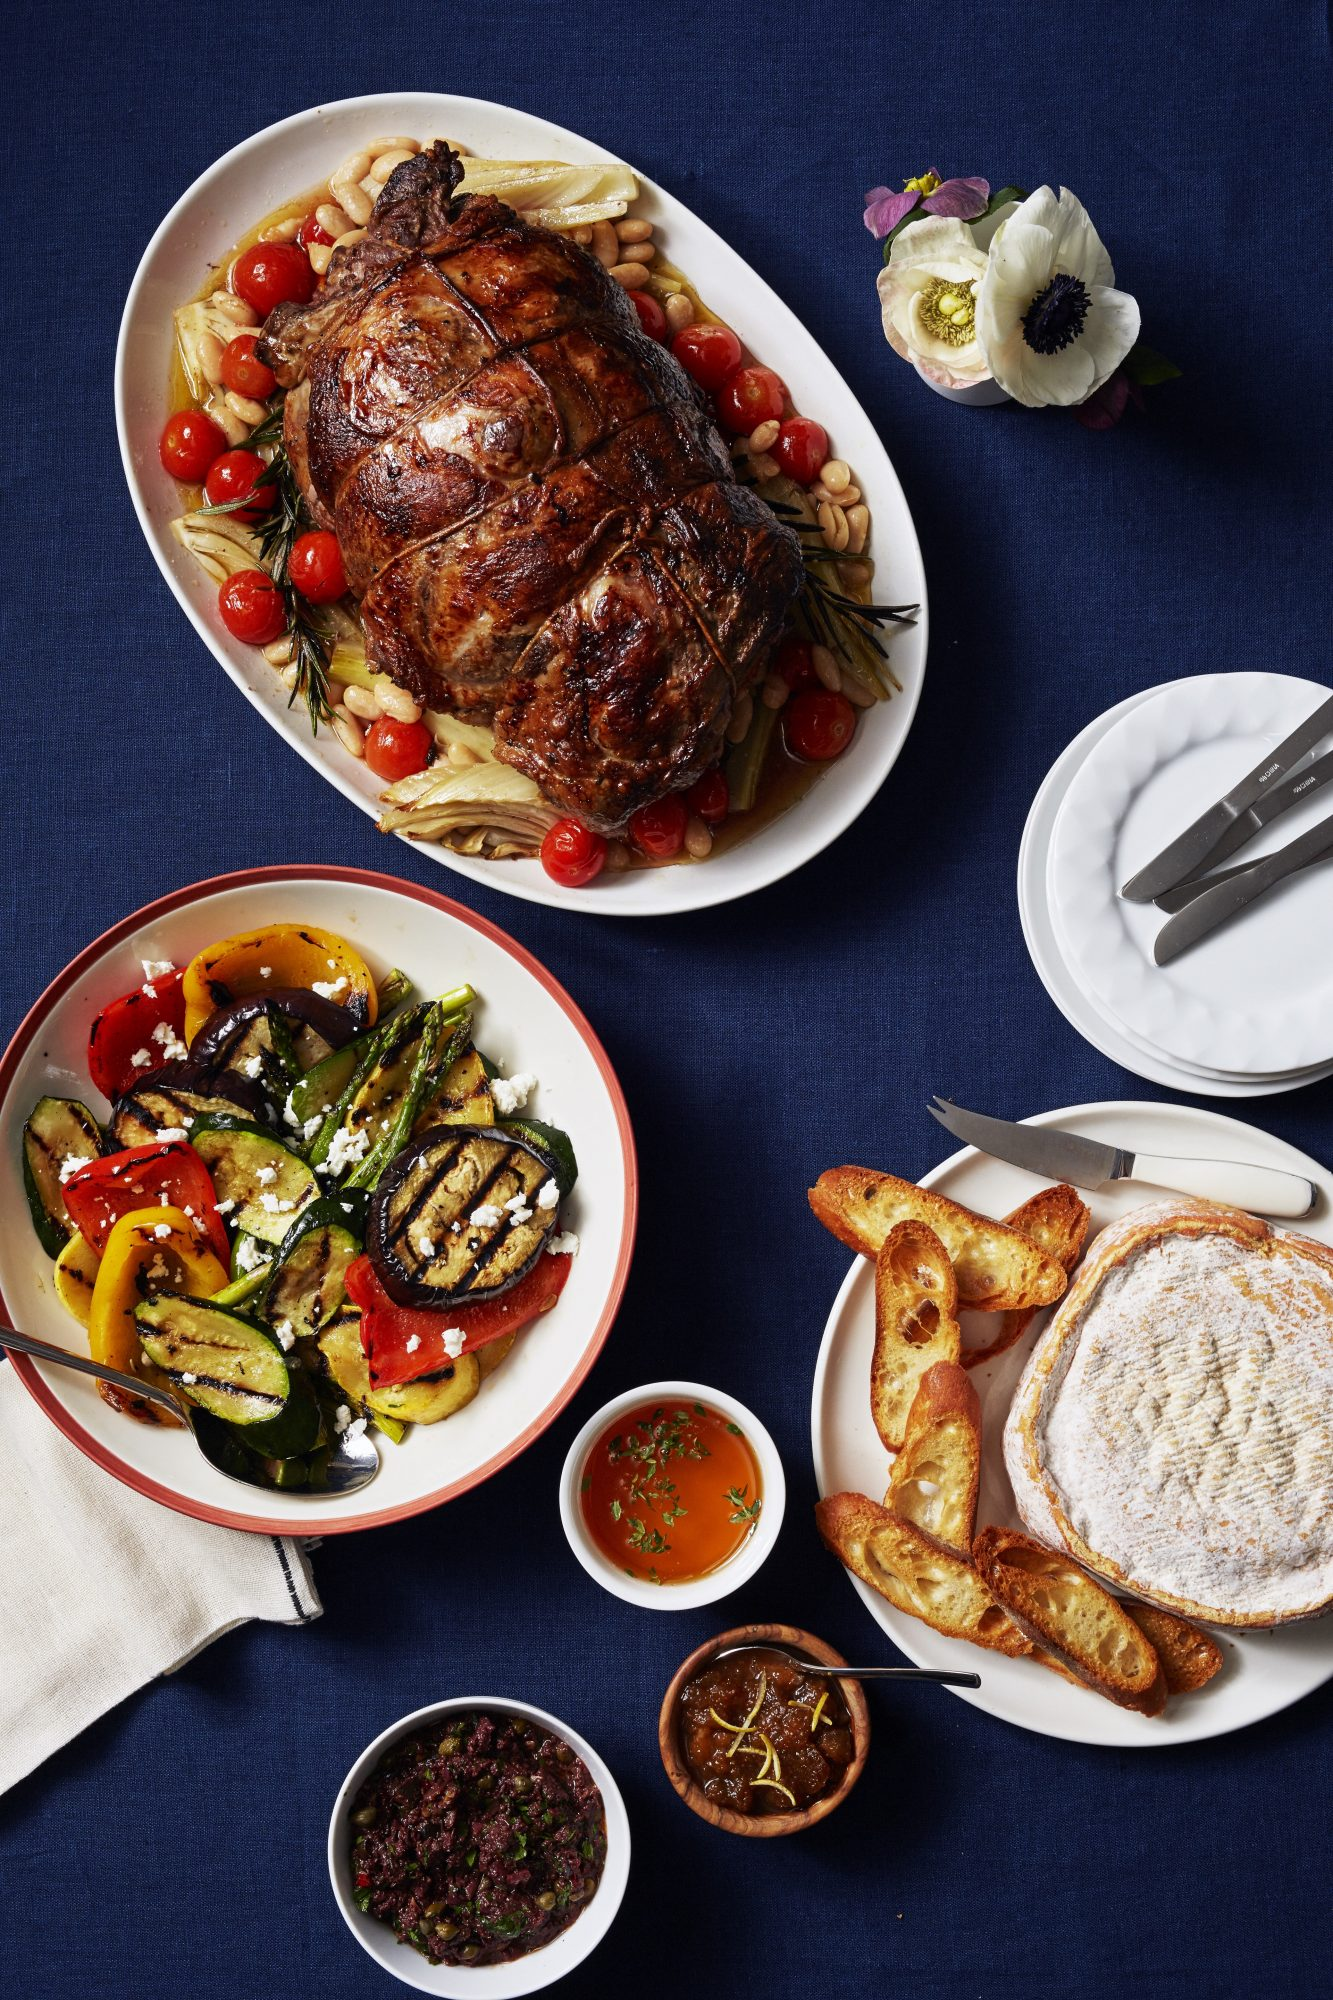 Roasted Leg of Lamb with Fennel, Tomatoes & White Beans